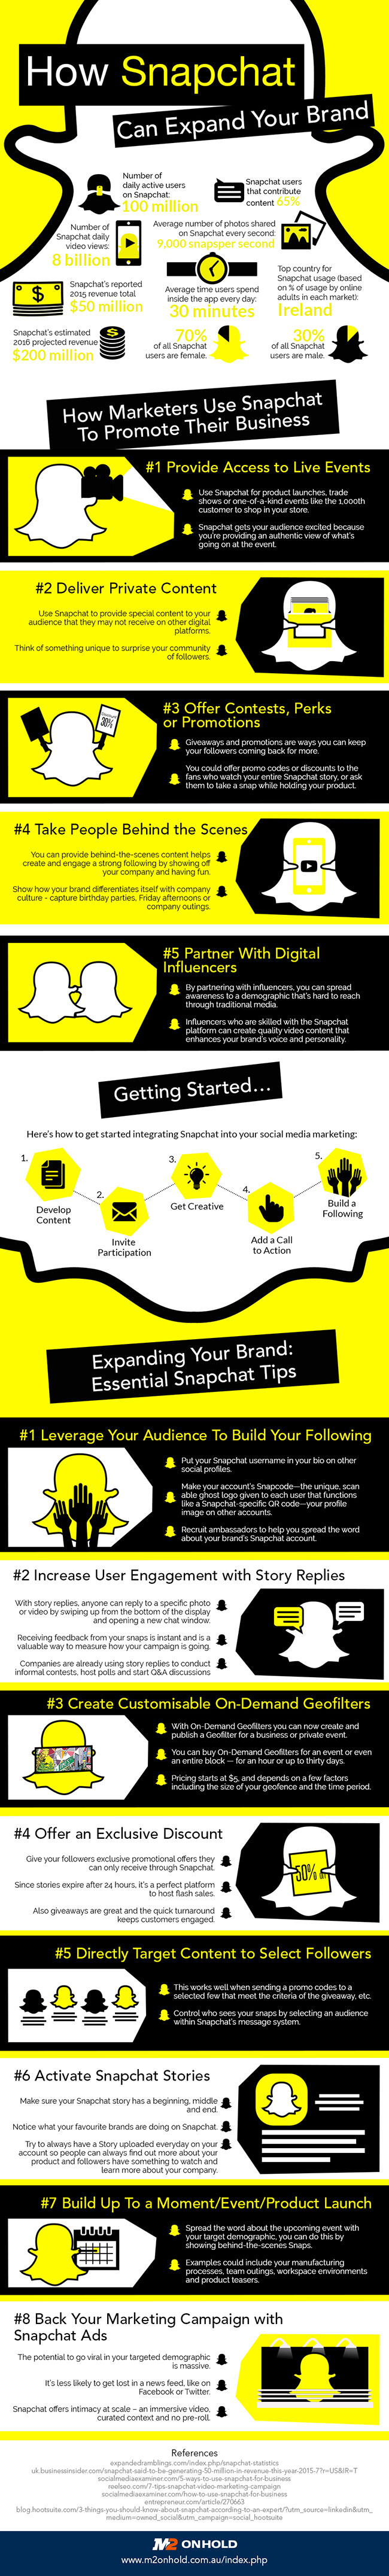 How-Snapchat-Can-Expand-Your-Brand-[Infographic]